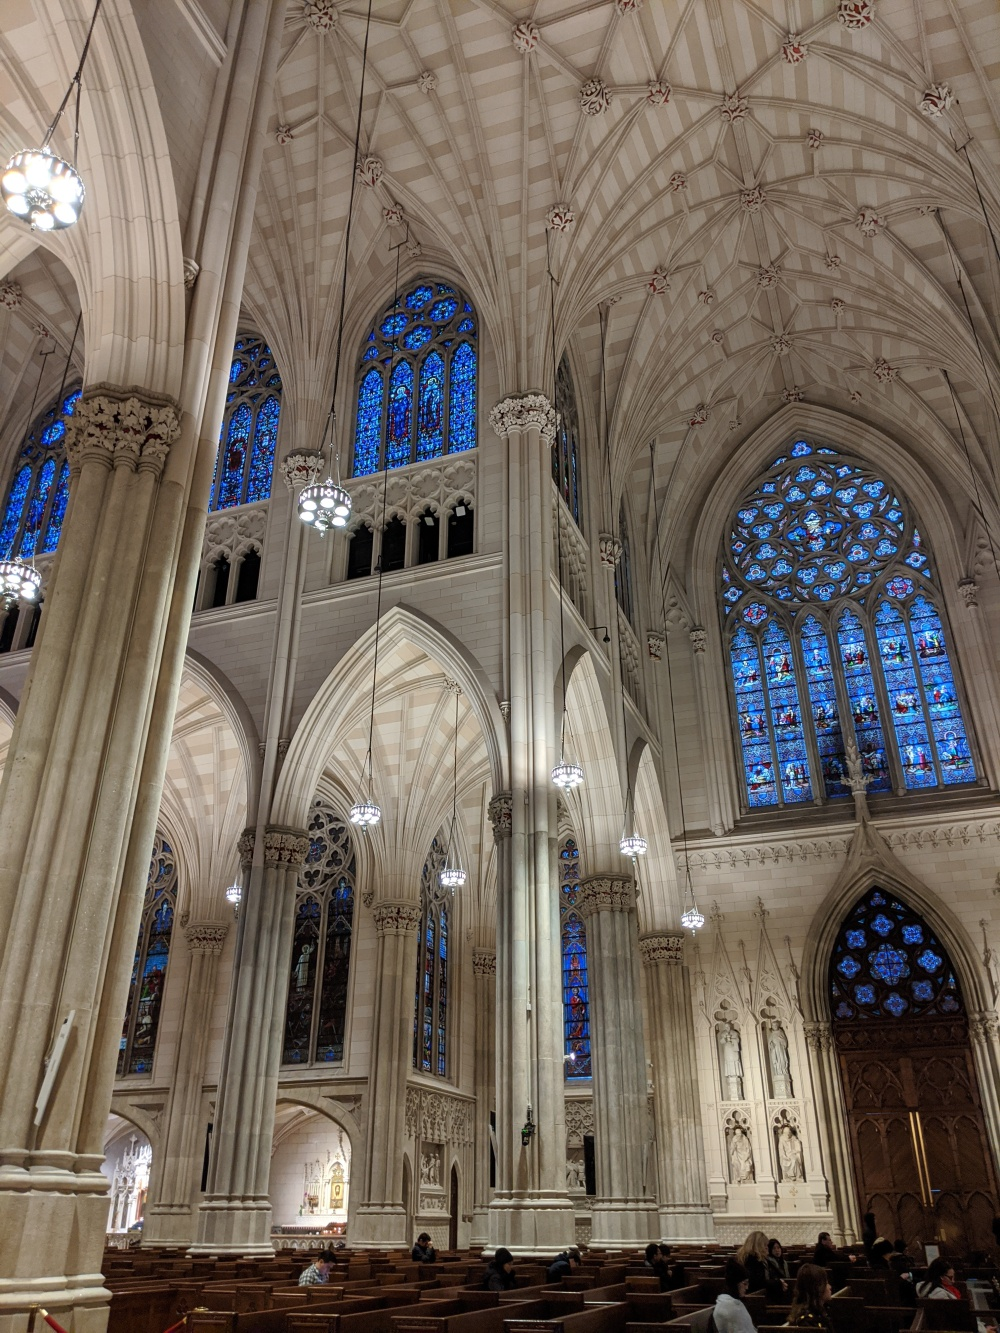 Interior of St. Patrick's Cathedral